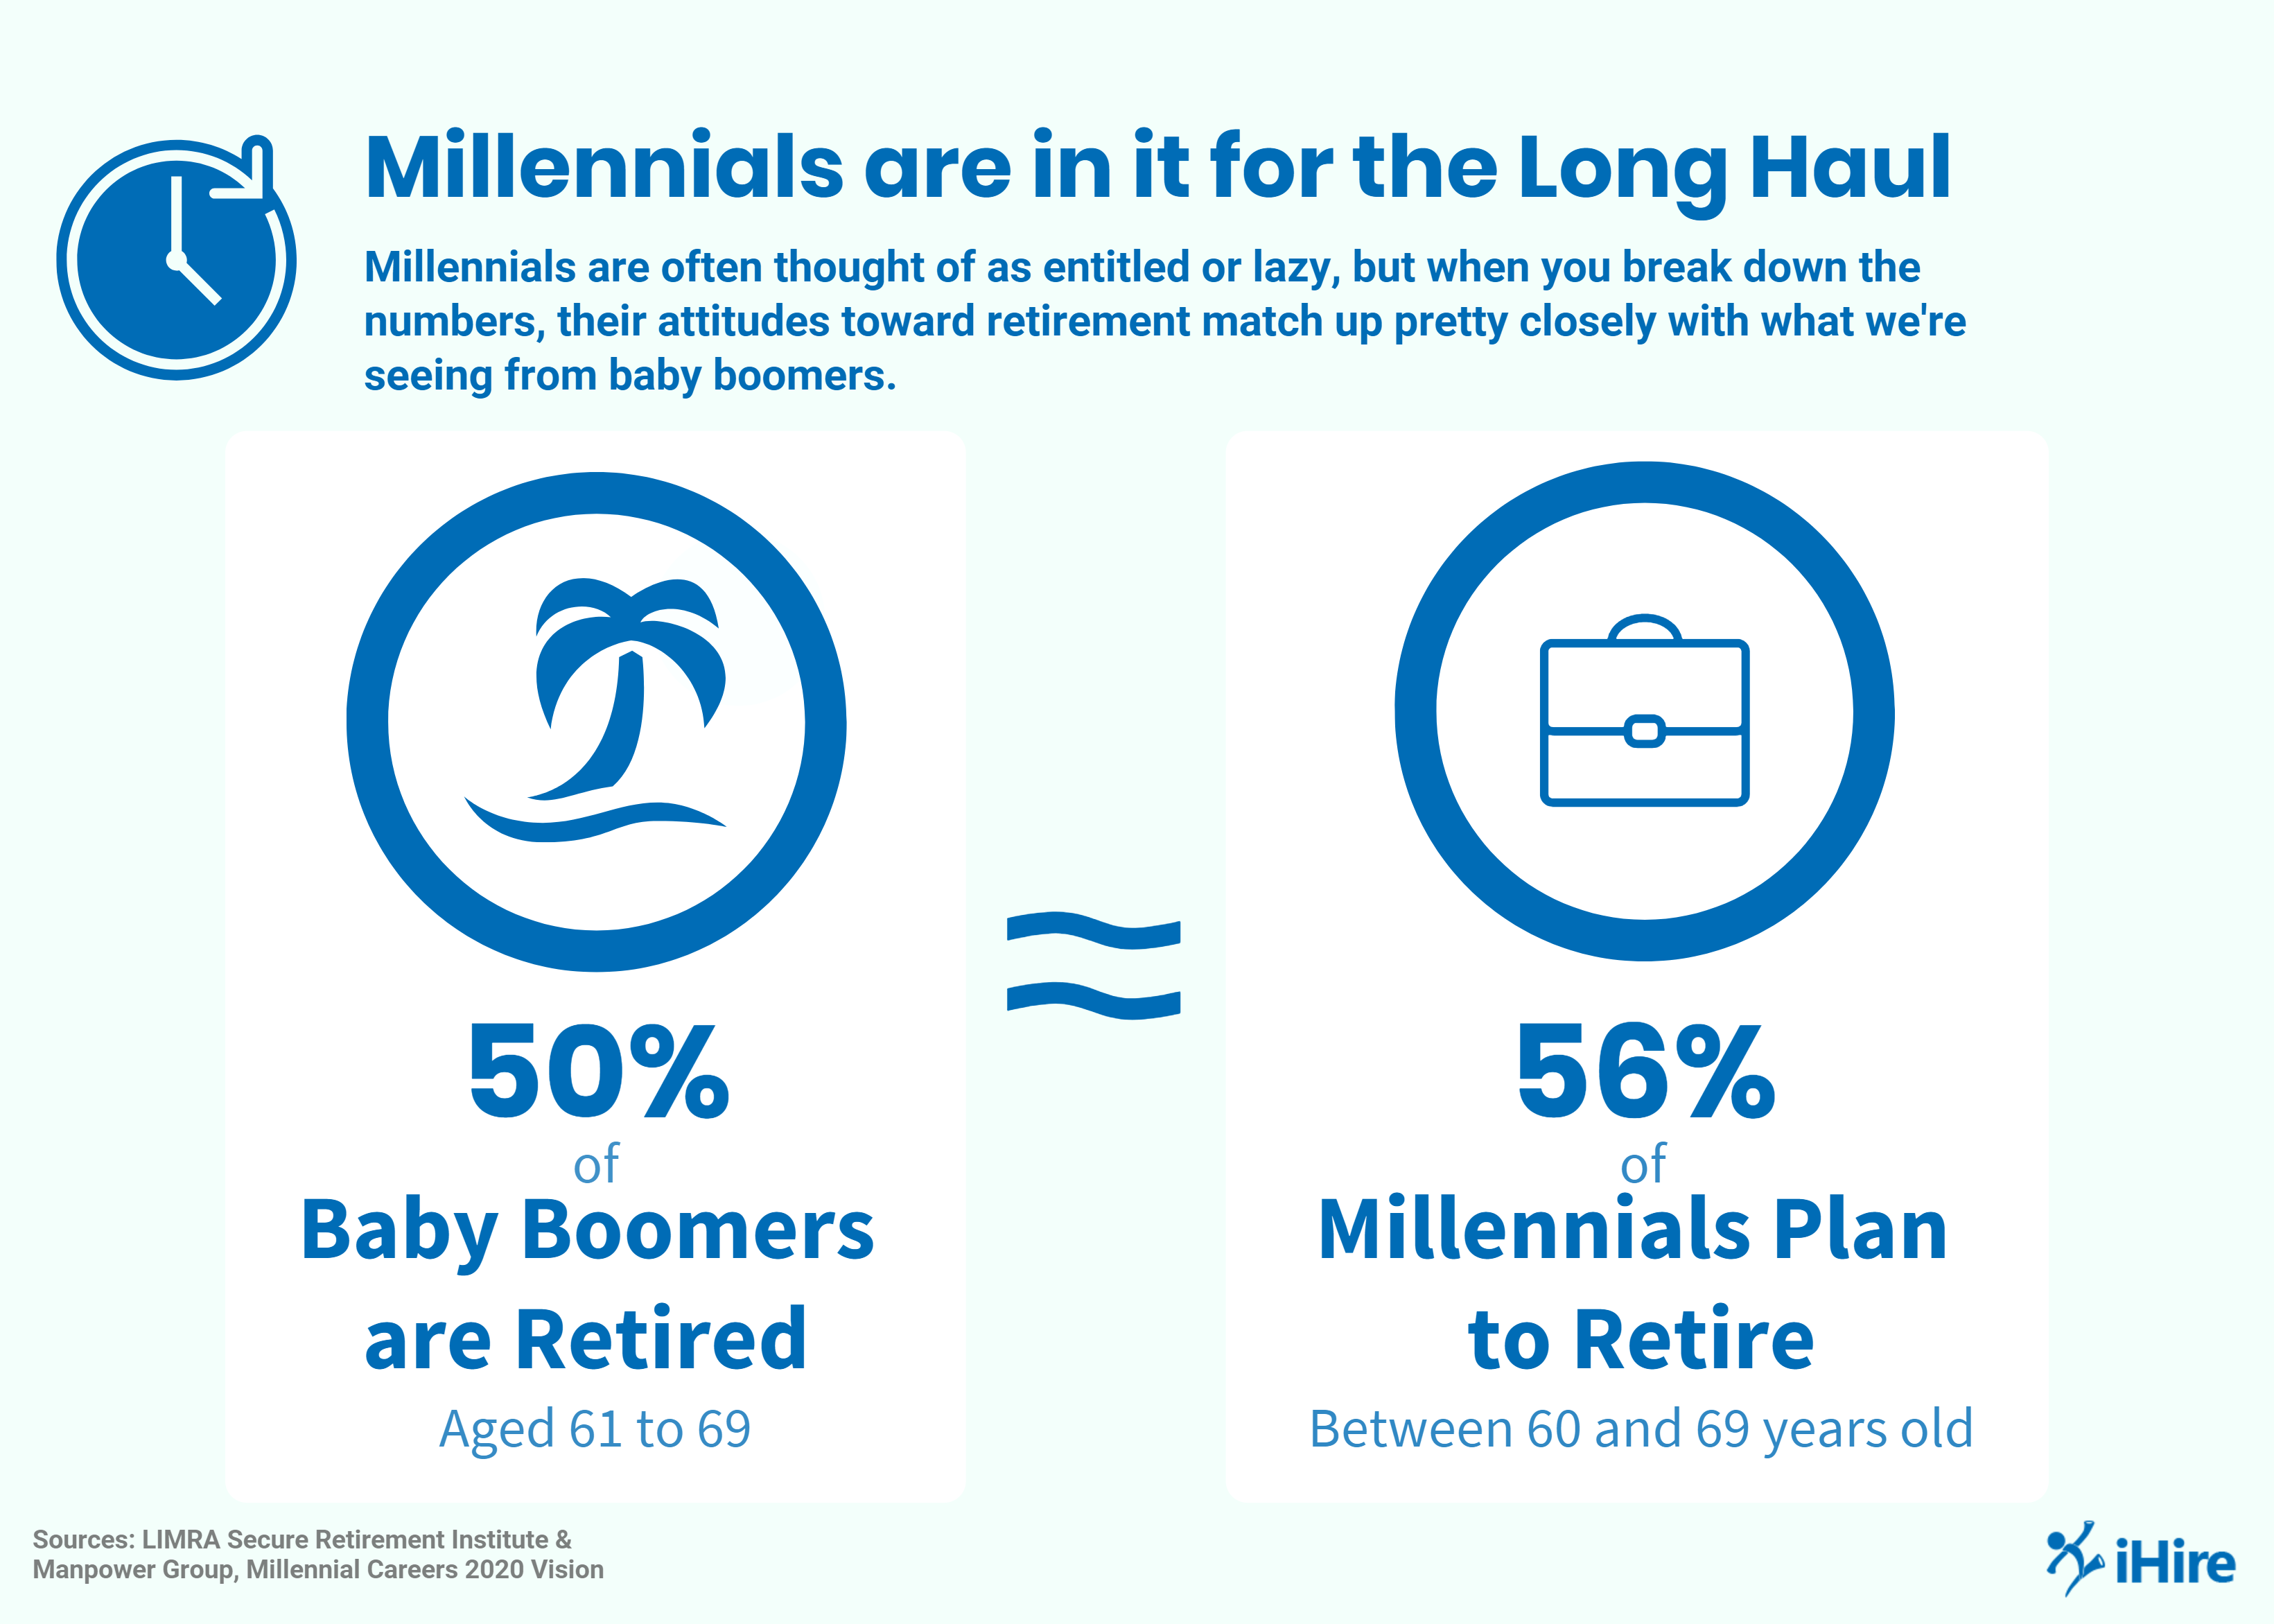 Millennials are similar to baby boomers when it comes to retirement.